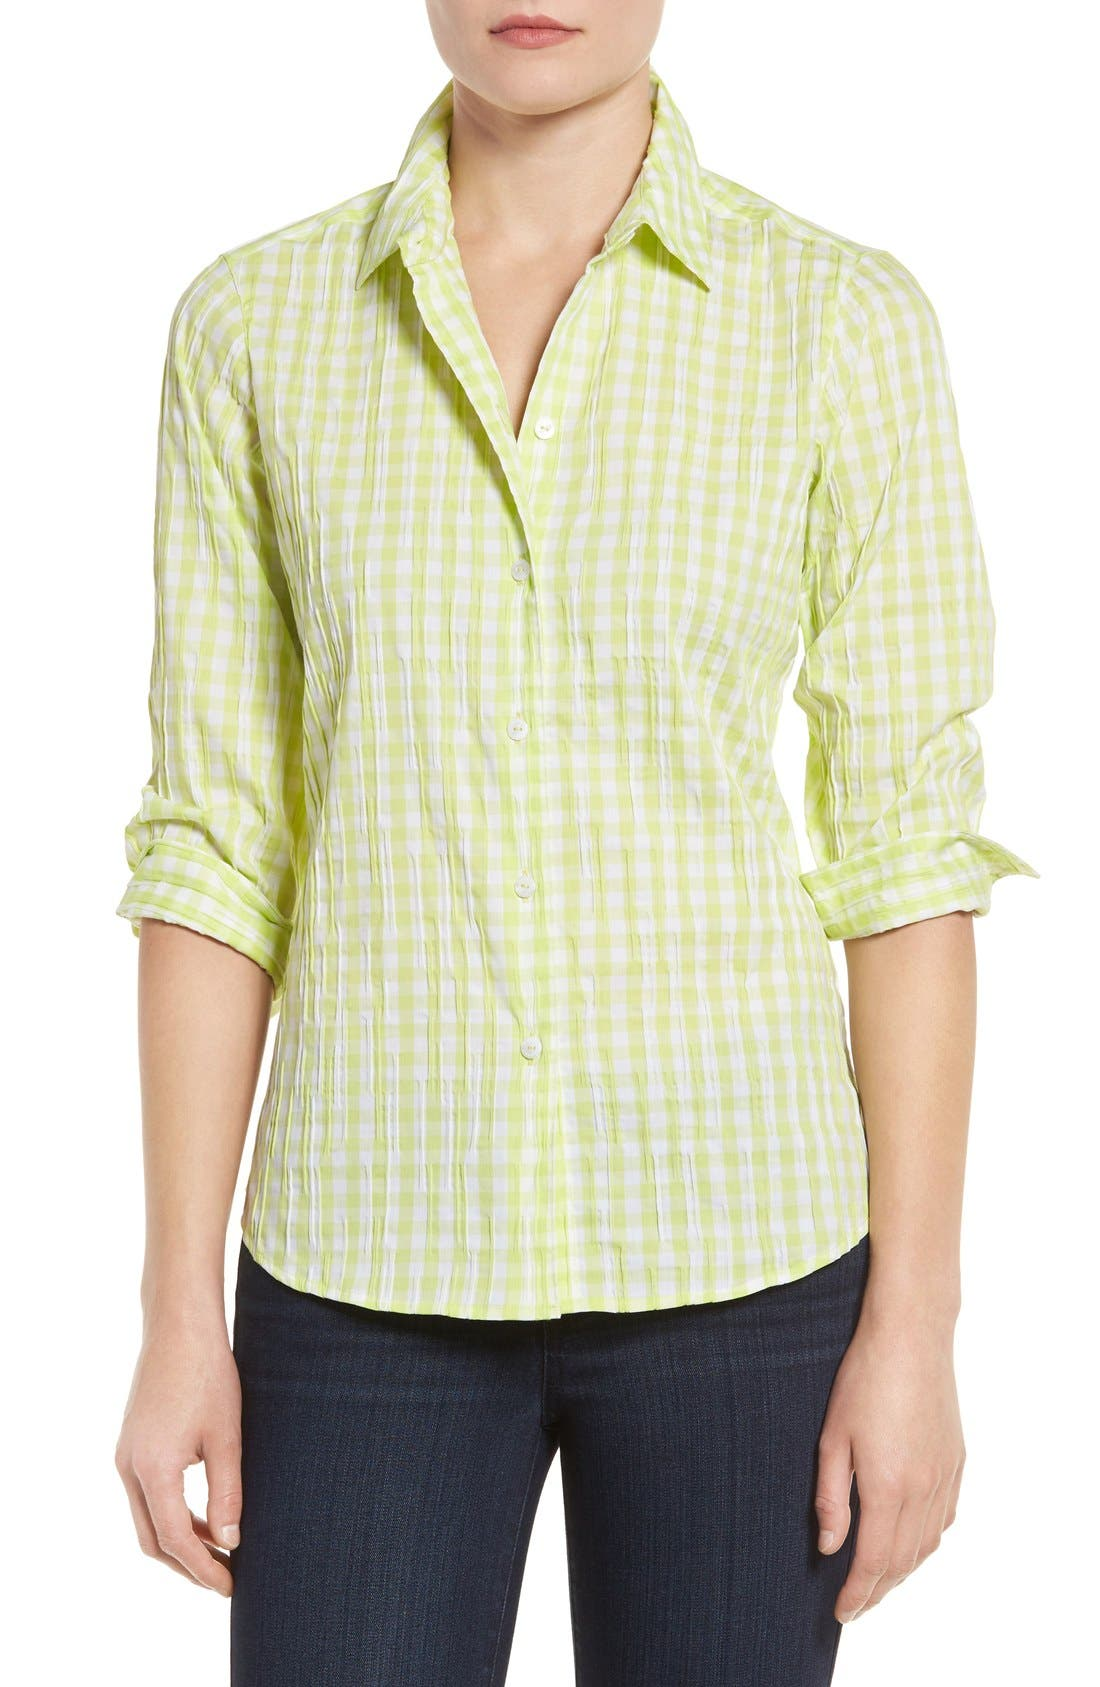 Alternate Image 1 Selected - Foxcroft Crinkled Gingham Shirt (Regular & Petite)